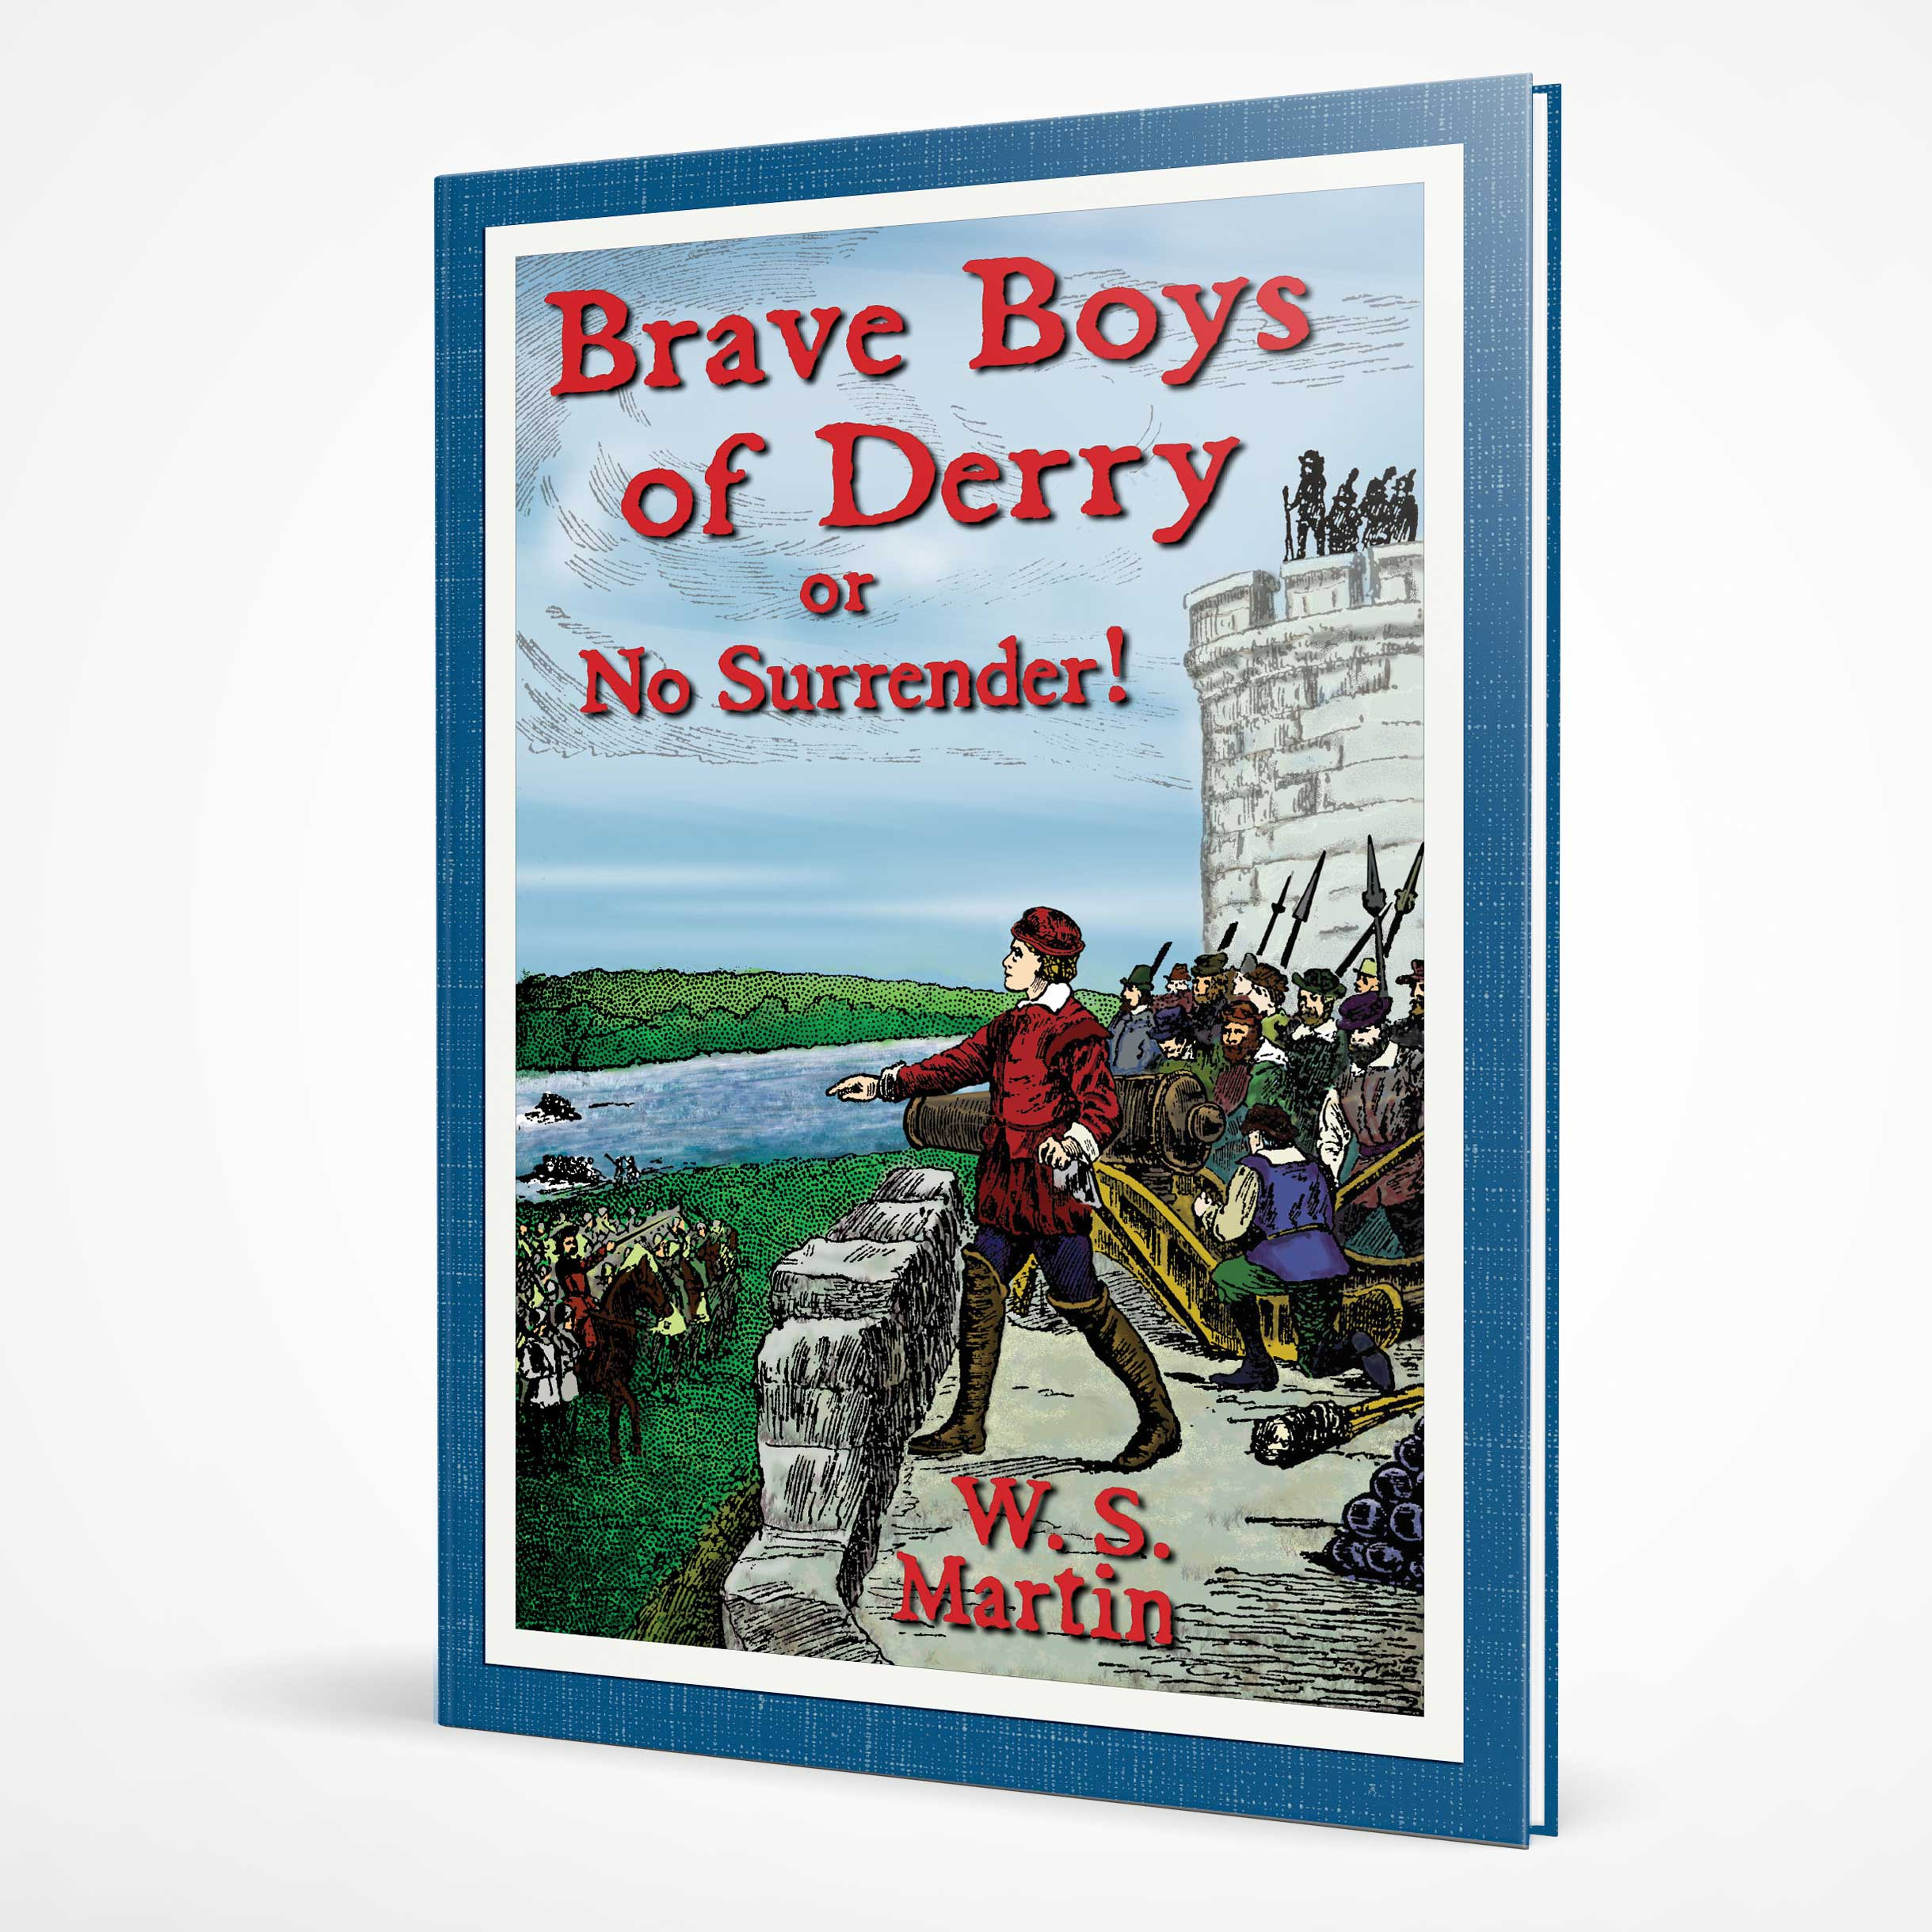 The Brave Boys of Derry